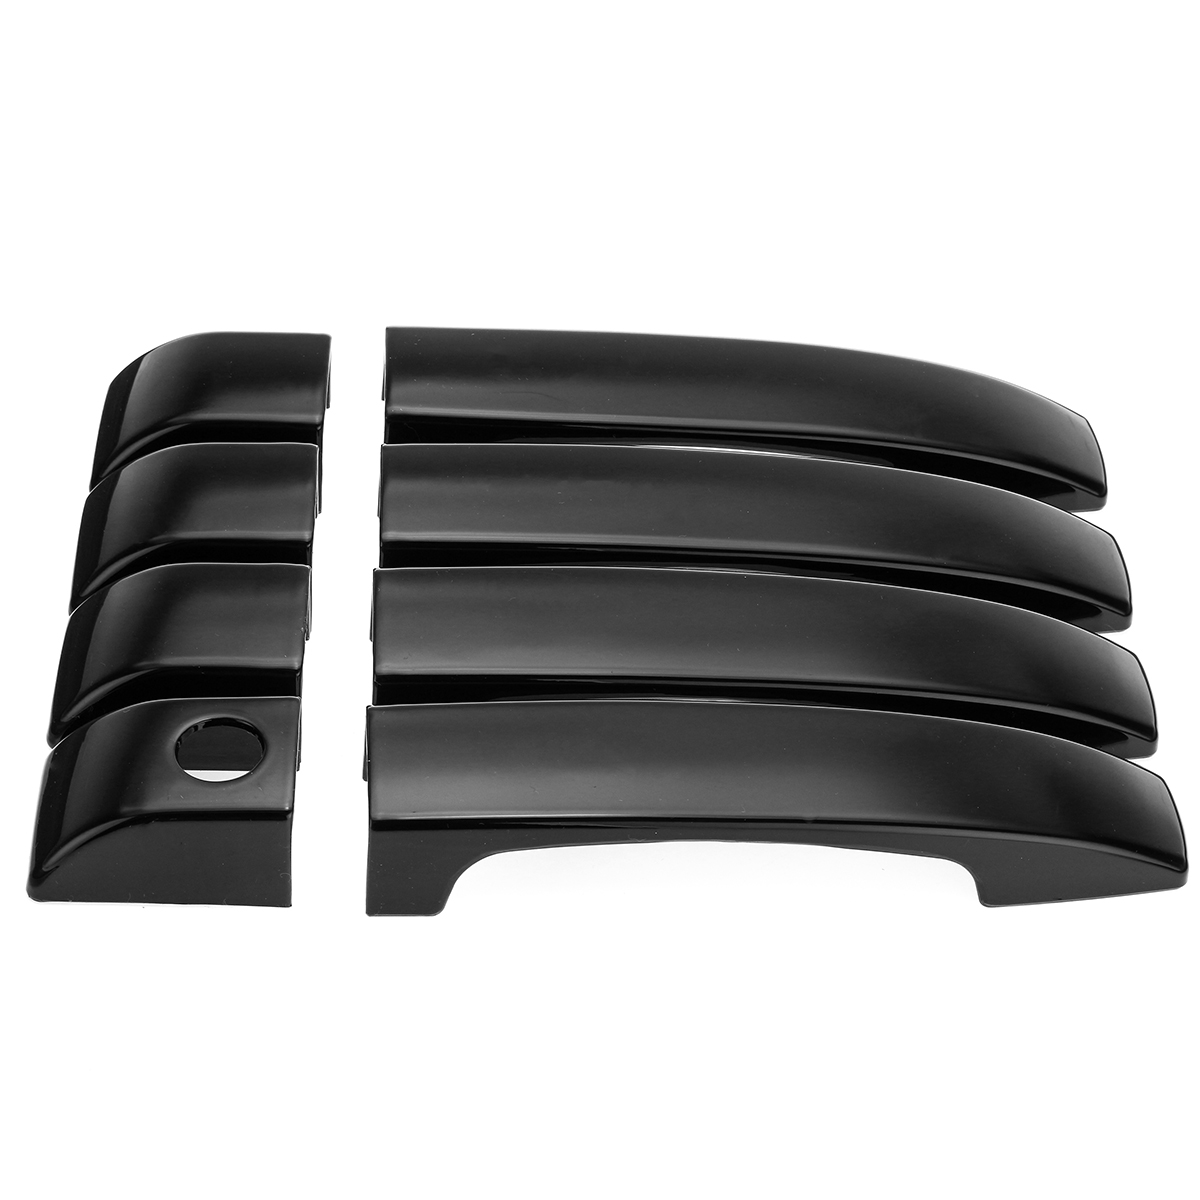 Gloss Black Car Door Handle Covers Trim For Land Rover Range Vogue L322 2002-2012